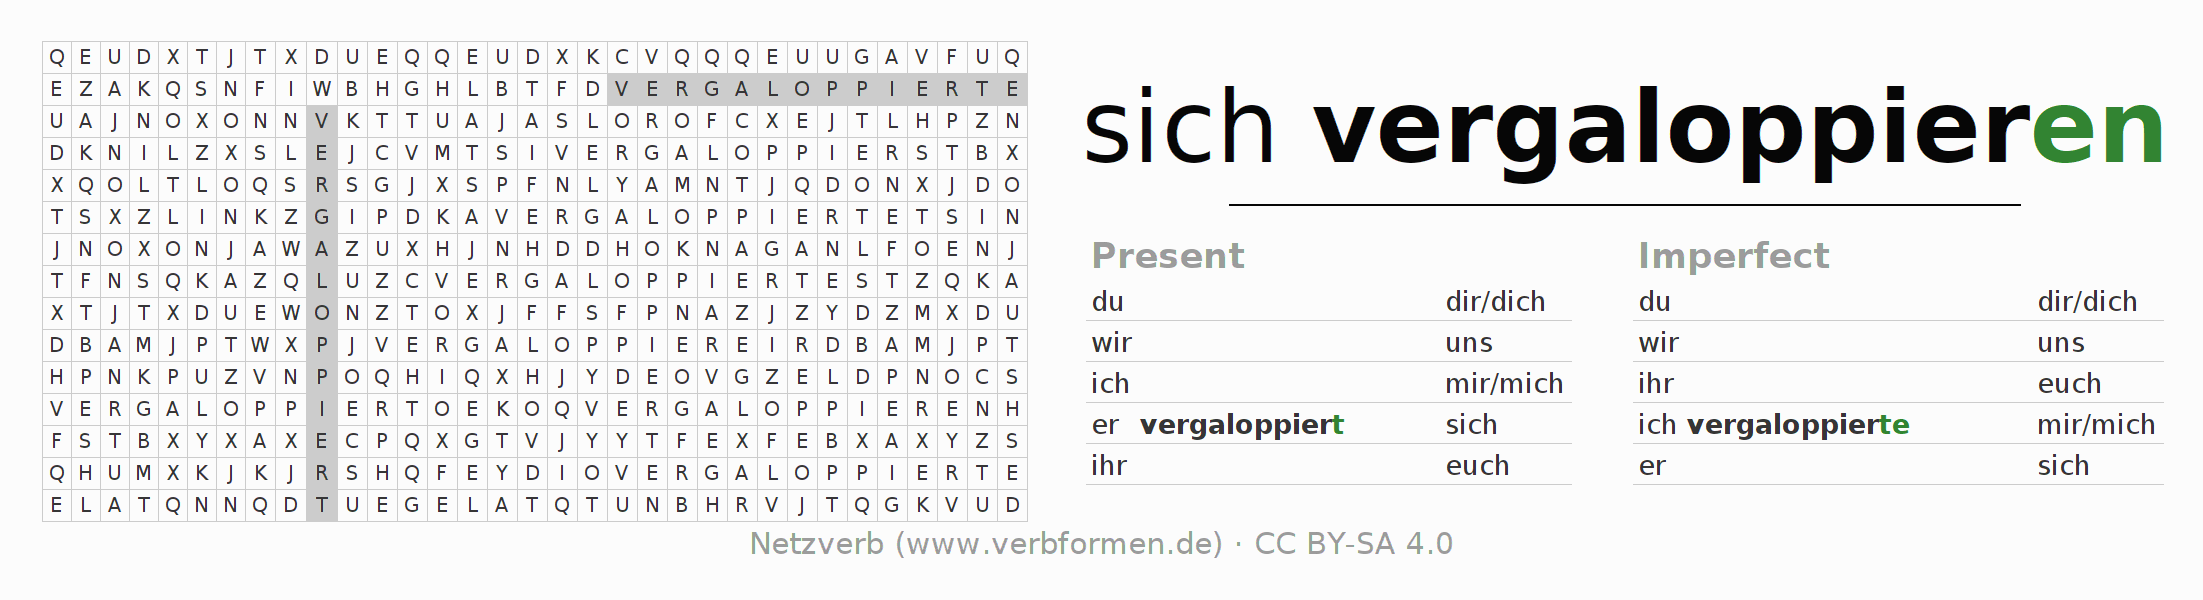 Word search puzzle for the conjugation of the verb sich vergaloppieren